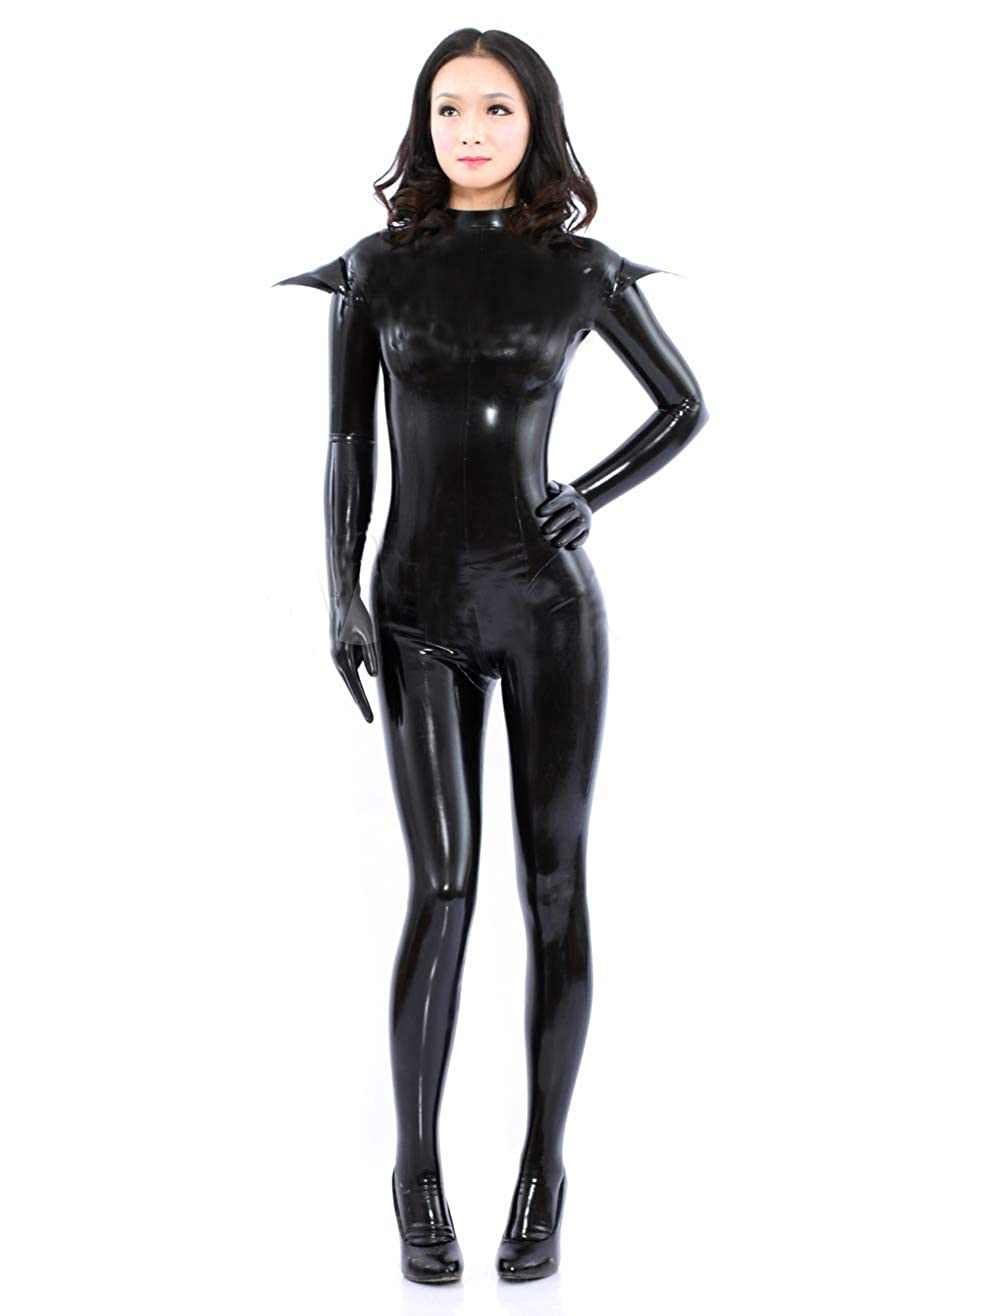 d5750cf8d98 Amazon.com  FASHION QUEEN Women s Sexy Black Bodycon Bodysuit Sexy  Halloween Catsuit with Gloves and Stocking  Clothing